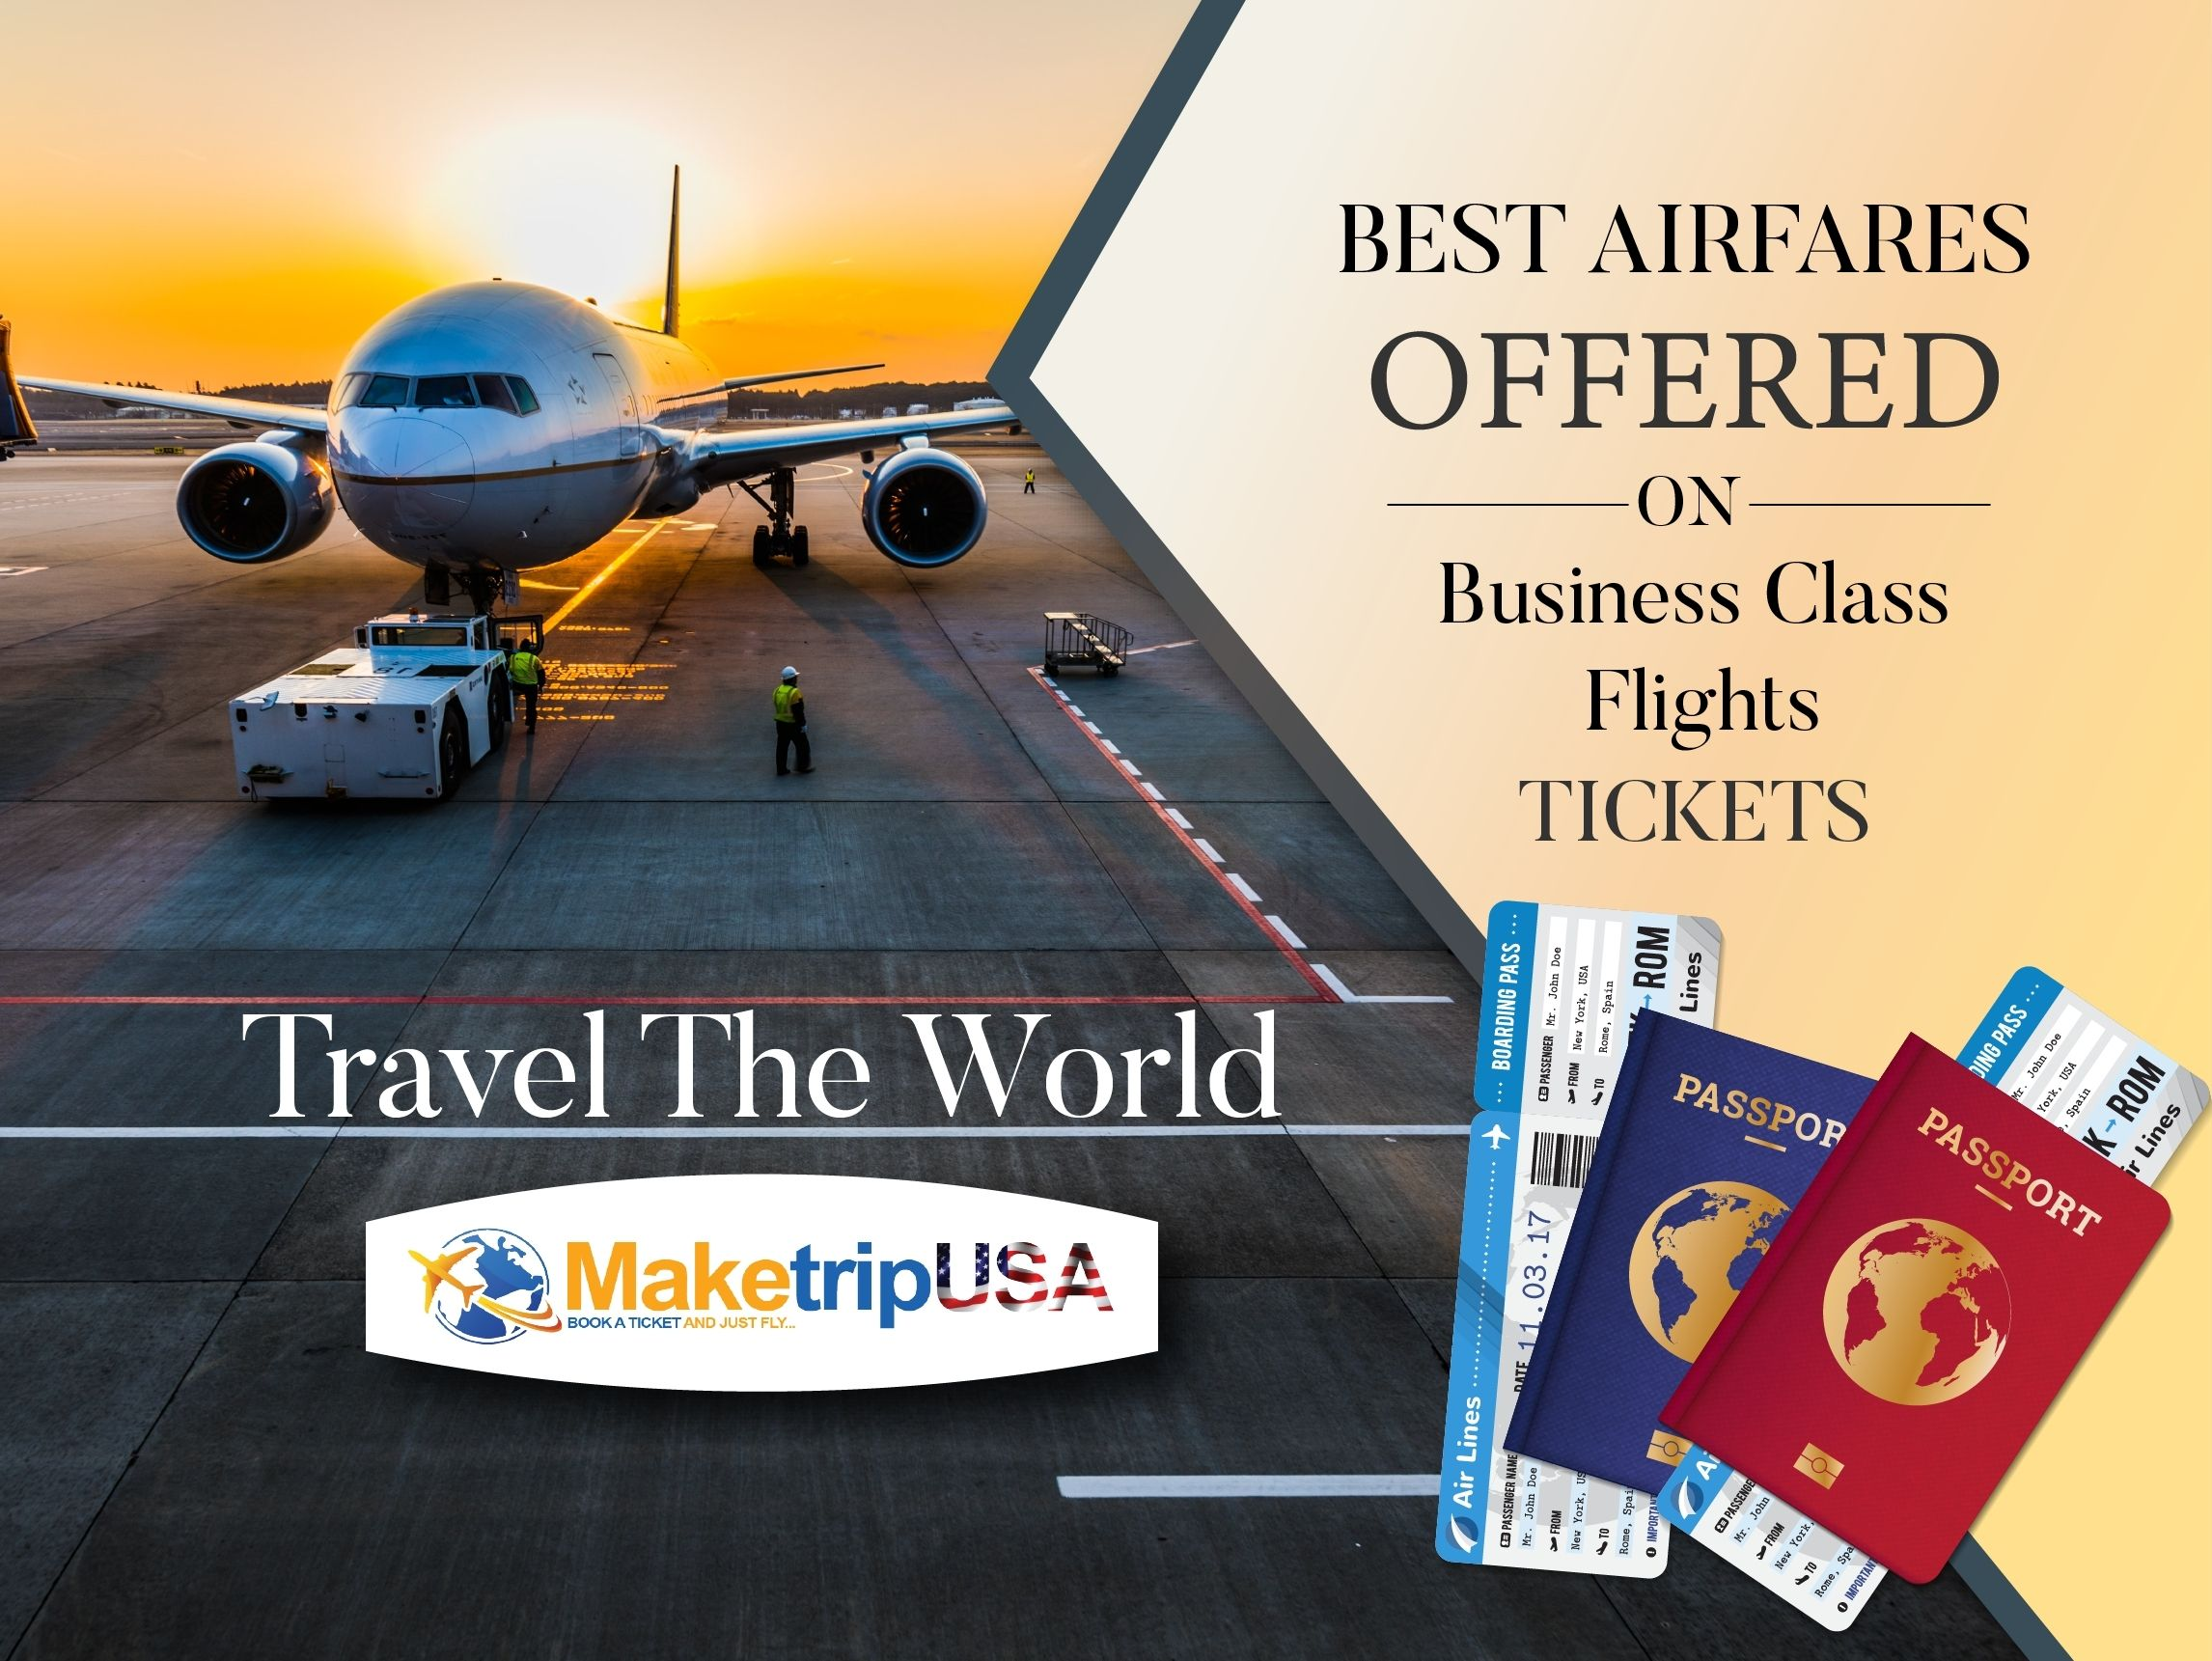 Best Airfares on Business Class